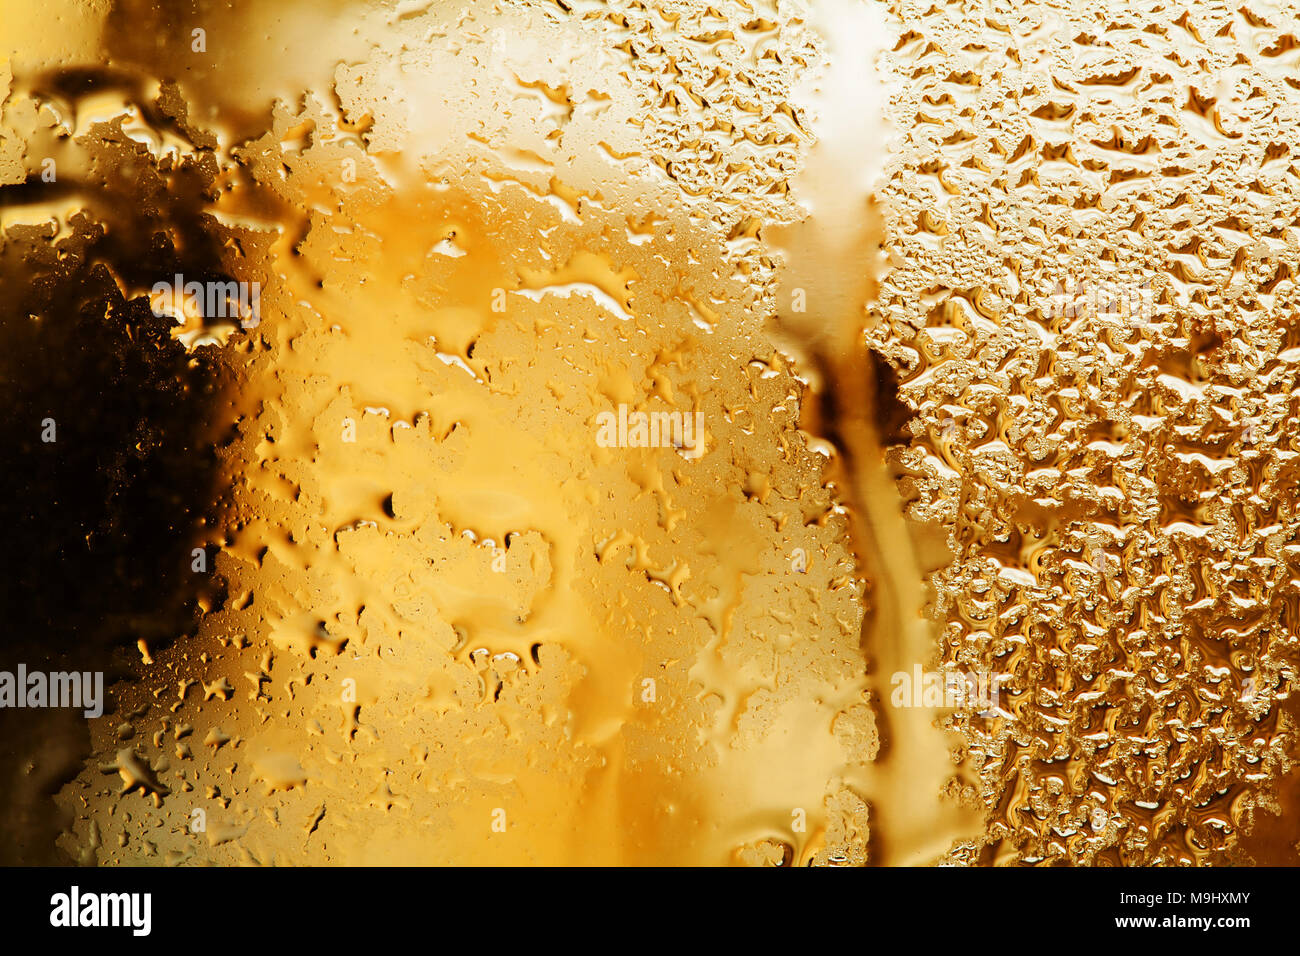 Rainy weather concept. Abstract golden color frame and water droplet pattern on glass window. Liquid textured bubbles macro view. Shallow depth of field. Stock Photo